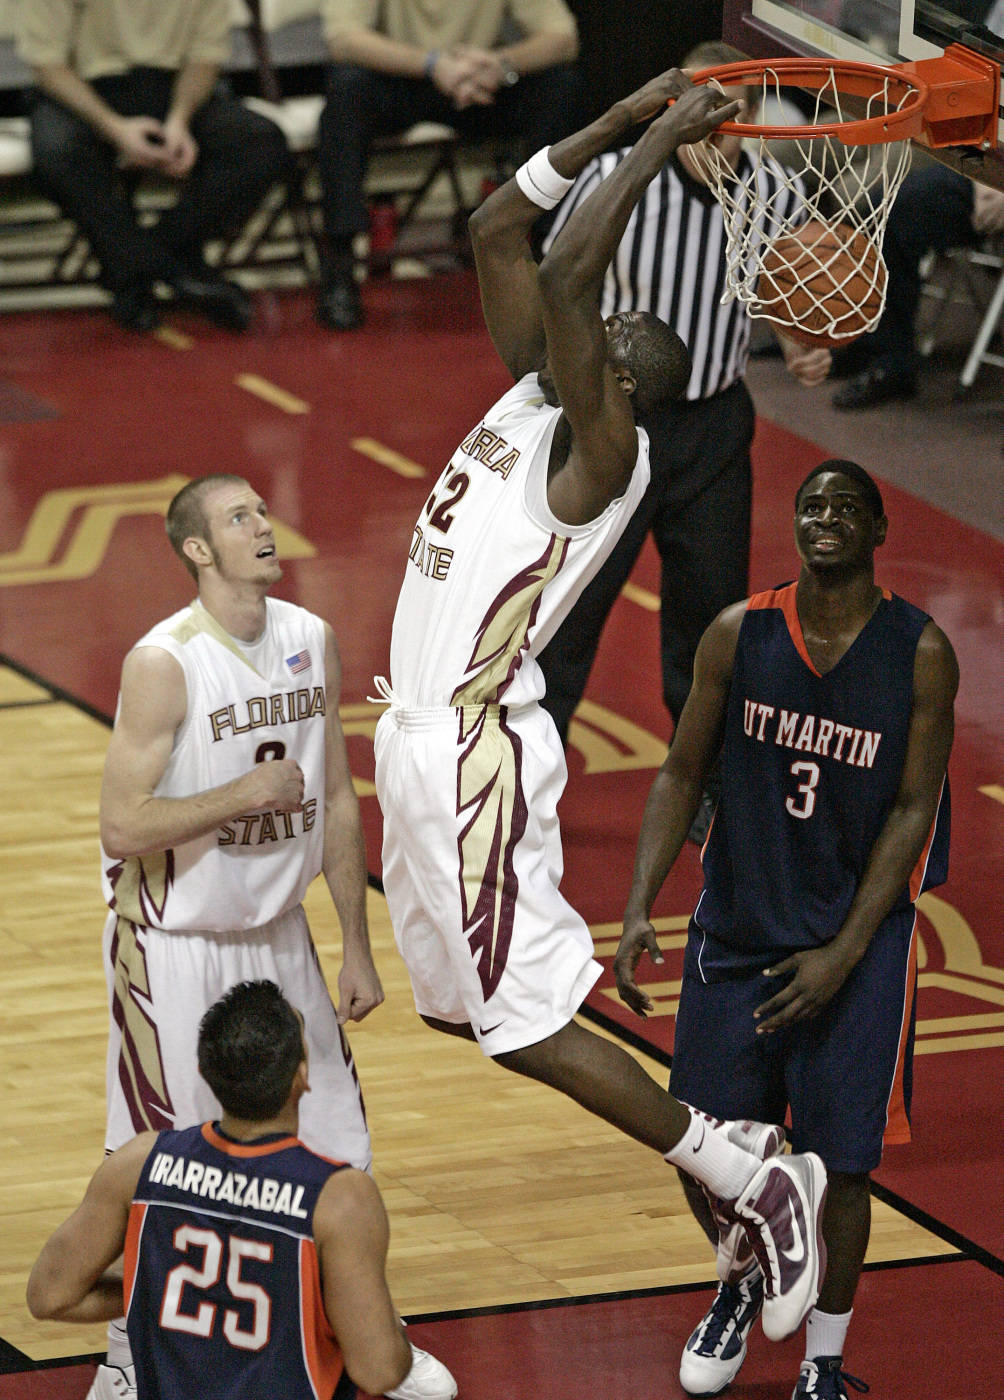 Florida State's Solomon Alabi scores with a reverse dunk as teammate Jordan DeMercy and Tennessee-Martin's Andres Irarrazabal, left, and Dominique Mpondo watch in the second half of an NCAA college basketball game which Florida State won 95-68 on Tuesday, Dec. 22, 2009, in Tallahassee, Fla. (AP Photo/Steve Cannon)